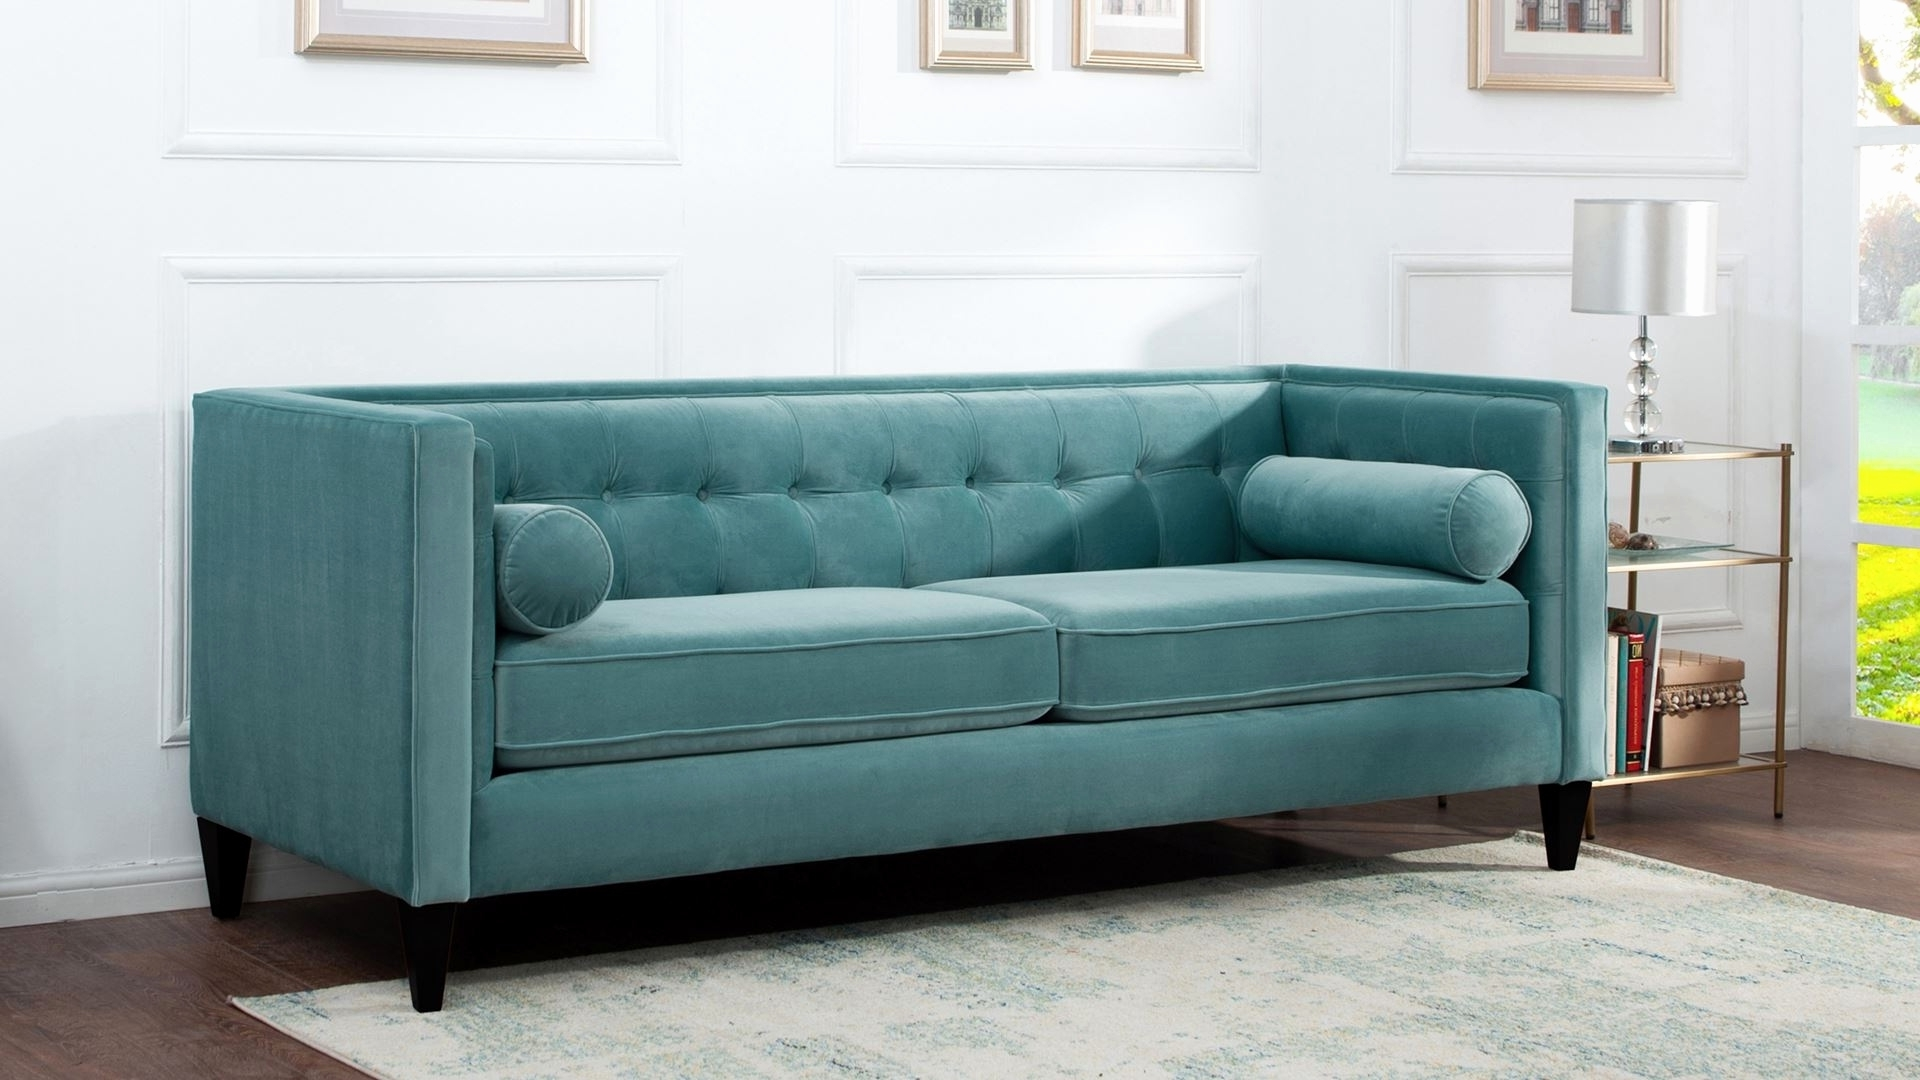 Well Known Lovely Affordable Tufted Sofa 2018 – Couches And Sofas Ideas Intended For Affordable Tufted Sofas (View 15 of 15)